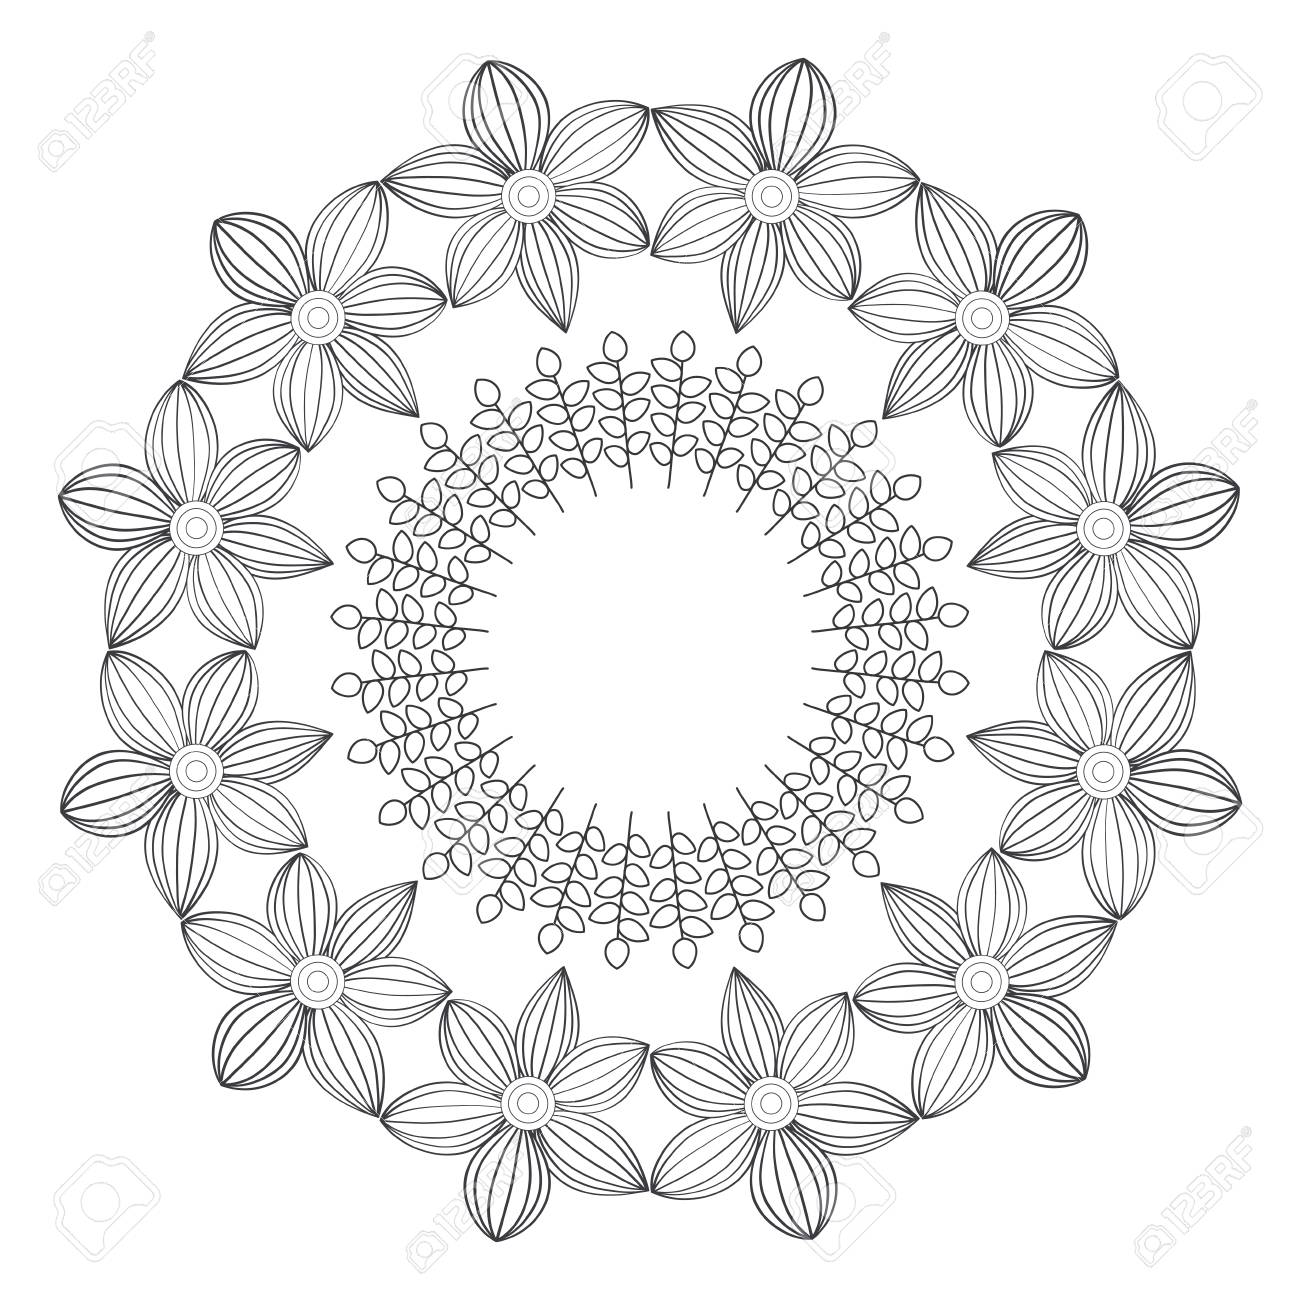 Circular crown with flowers vector illustration design royalty free circular crown with flowers vector illustration design stock vector 82007156 izmirmasajfo